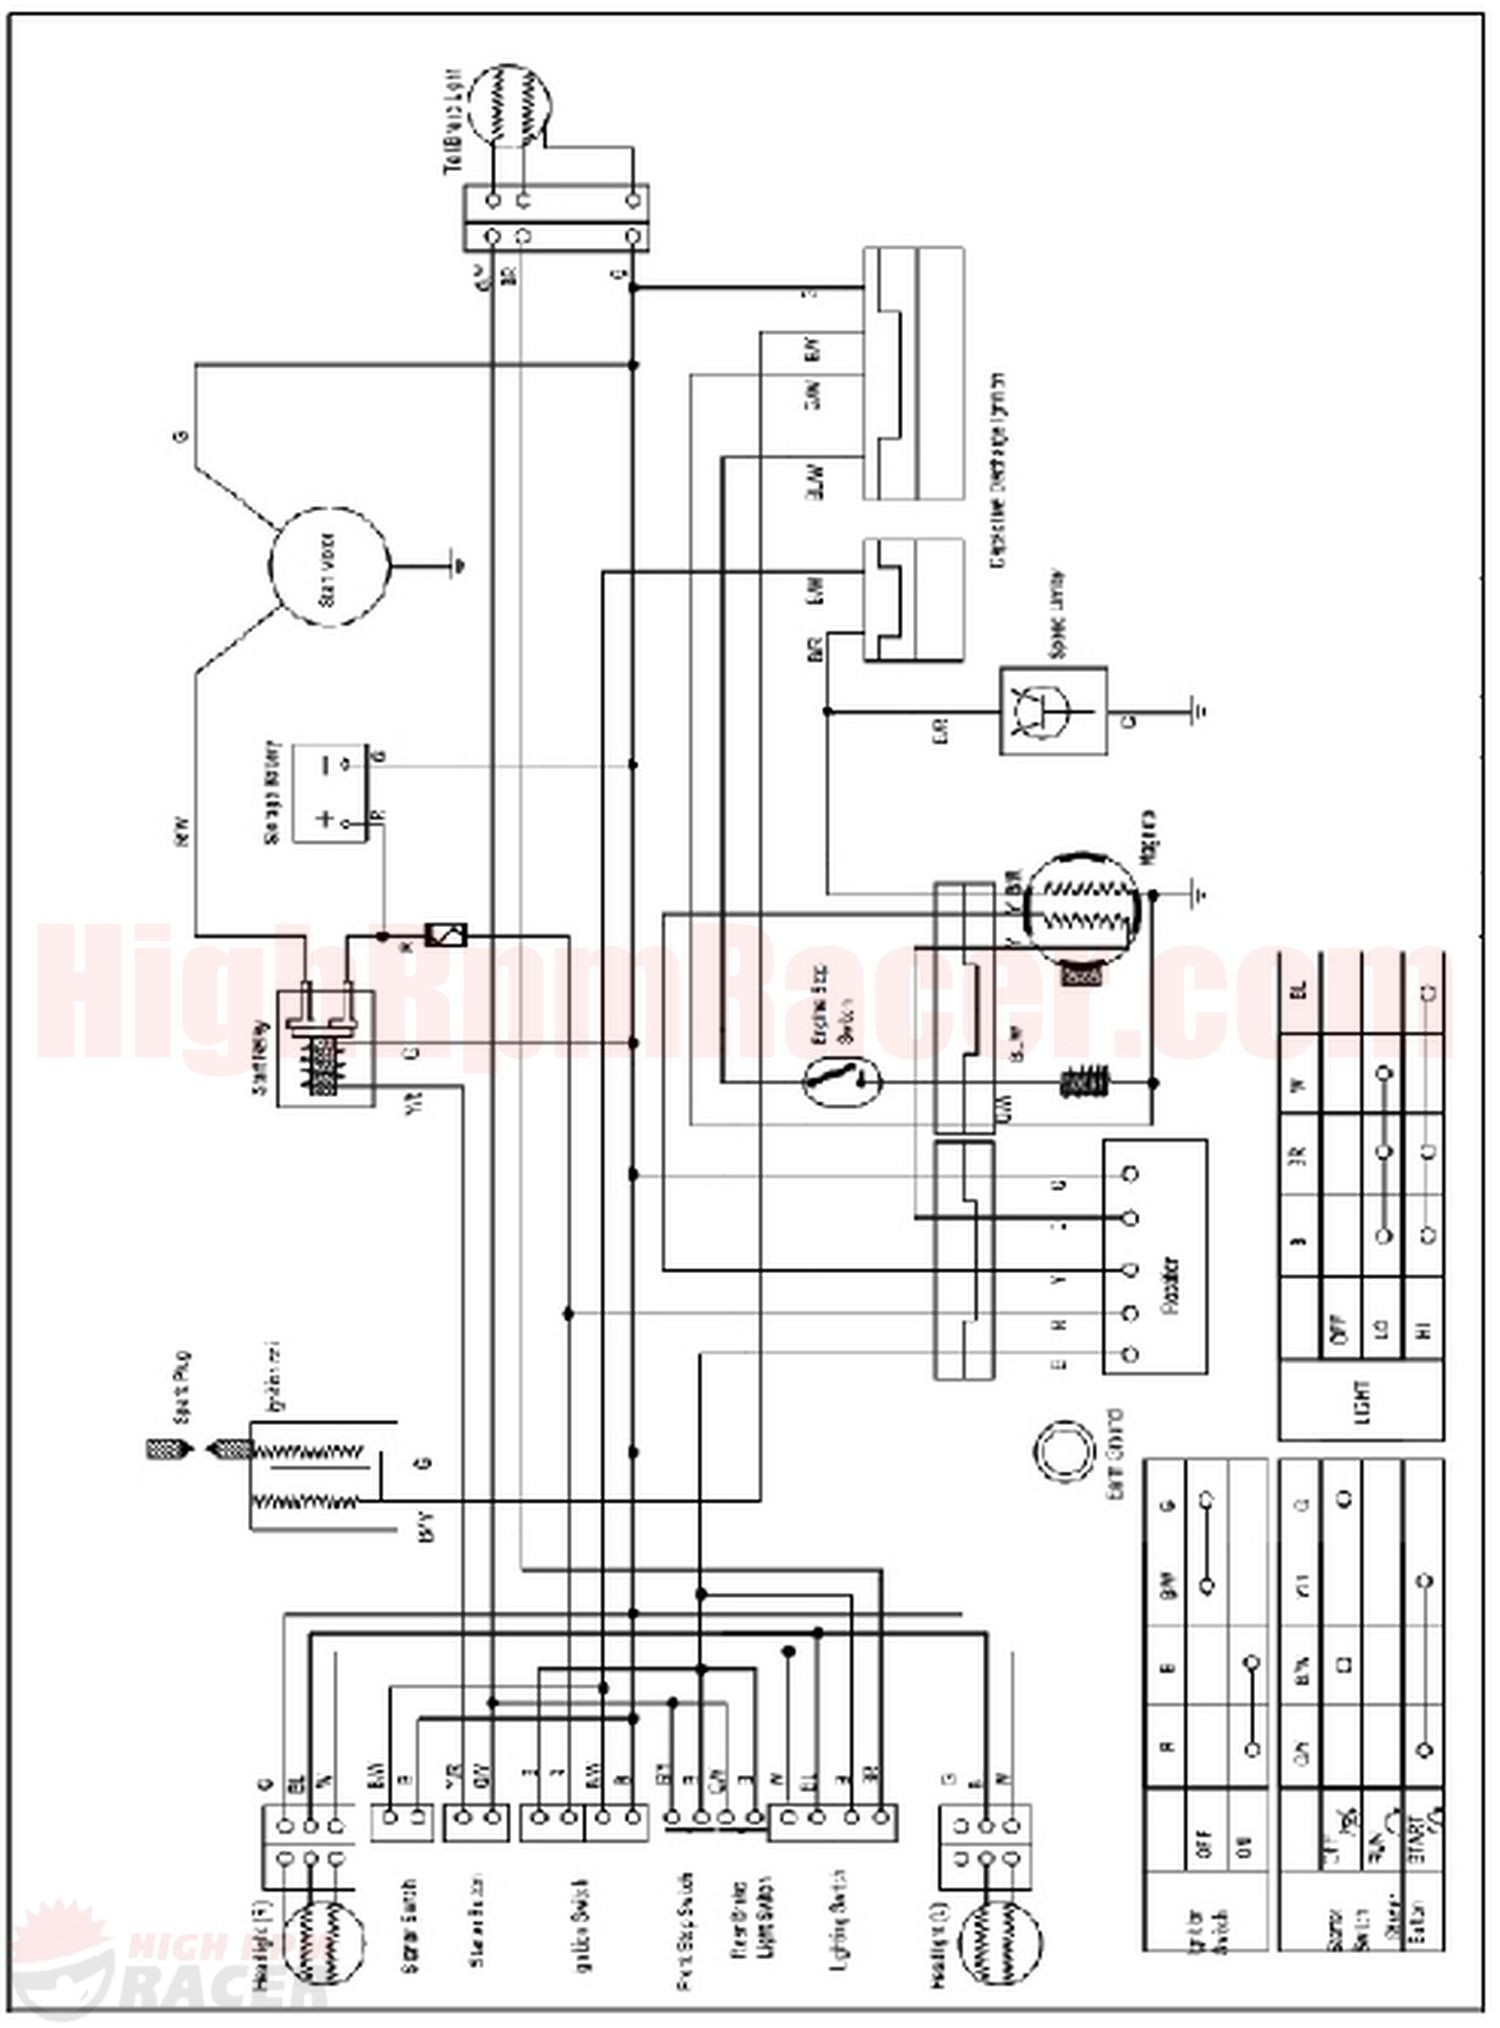 DIAGRAM] Suzuki 50cc Atv Wiring Diagram FULL Version HD ... on